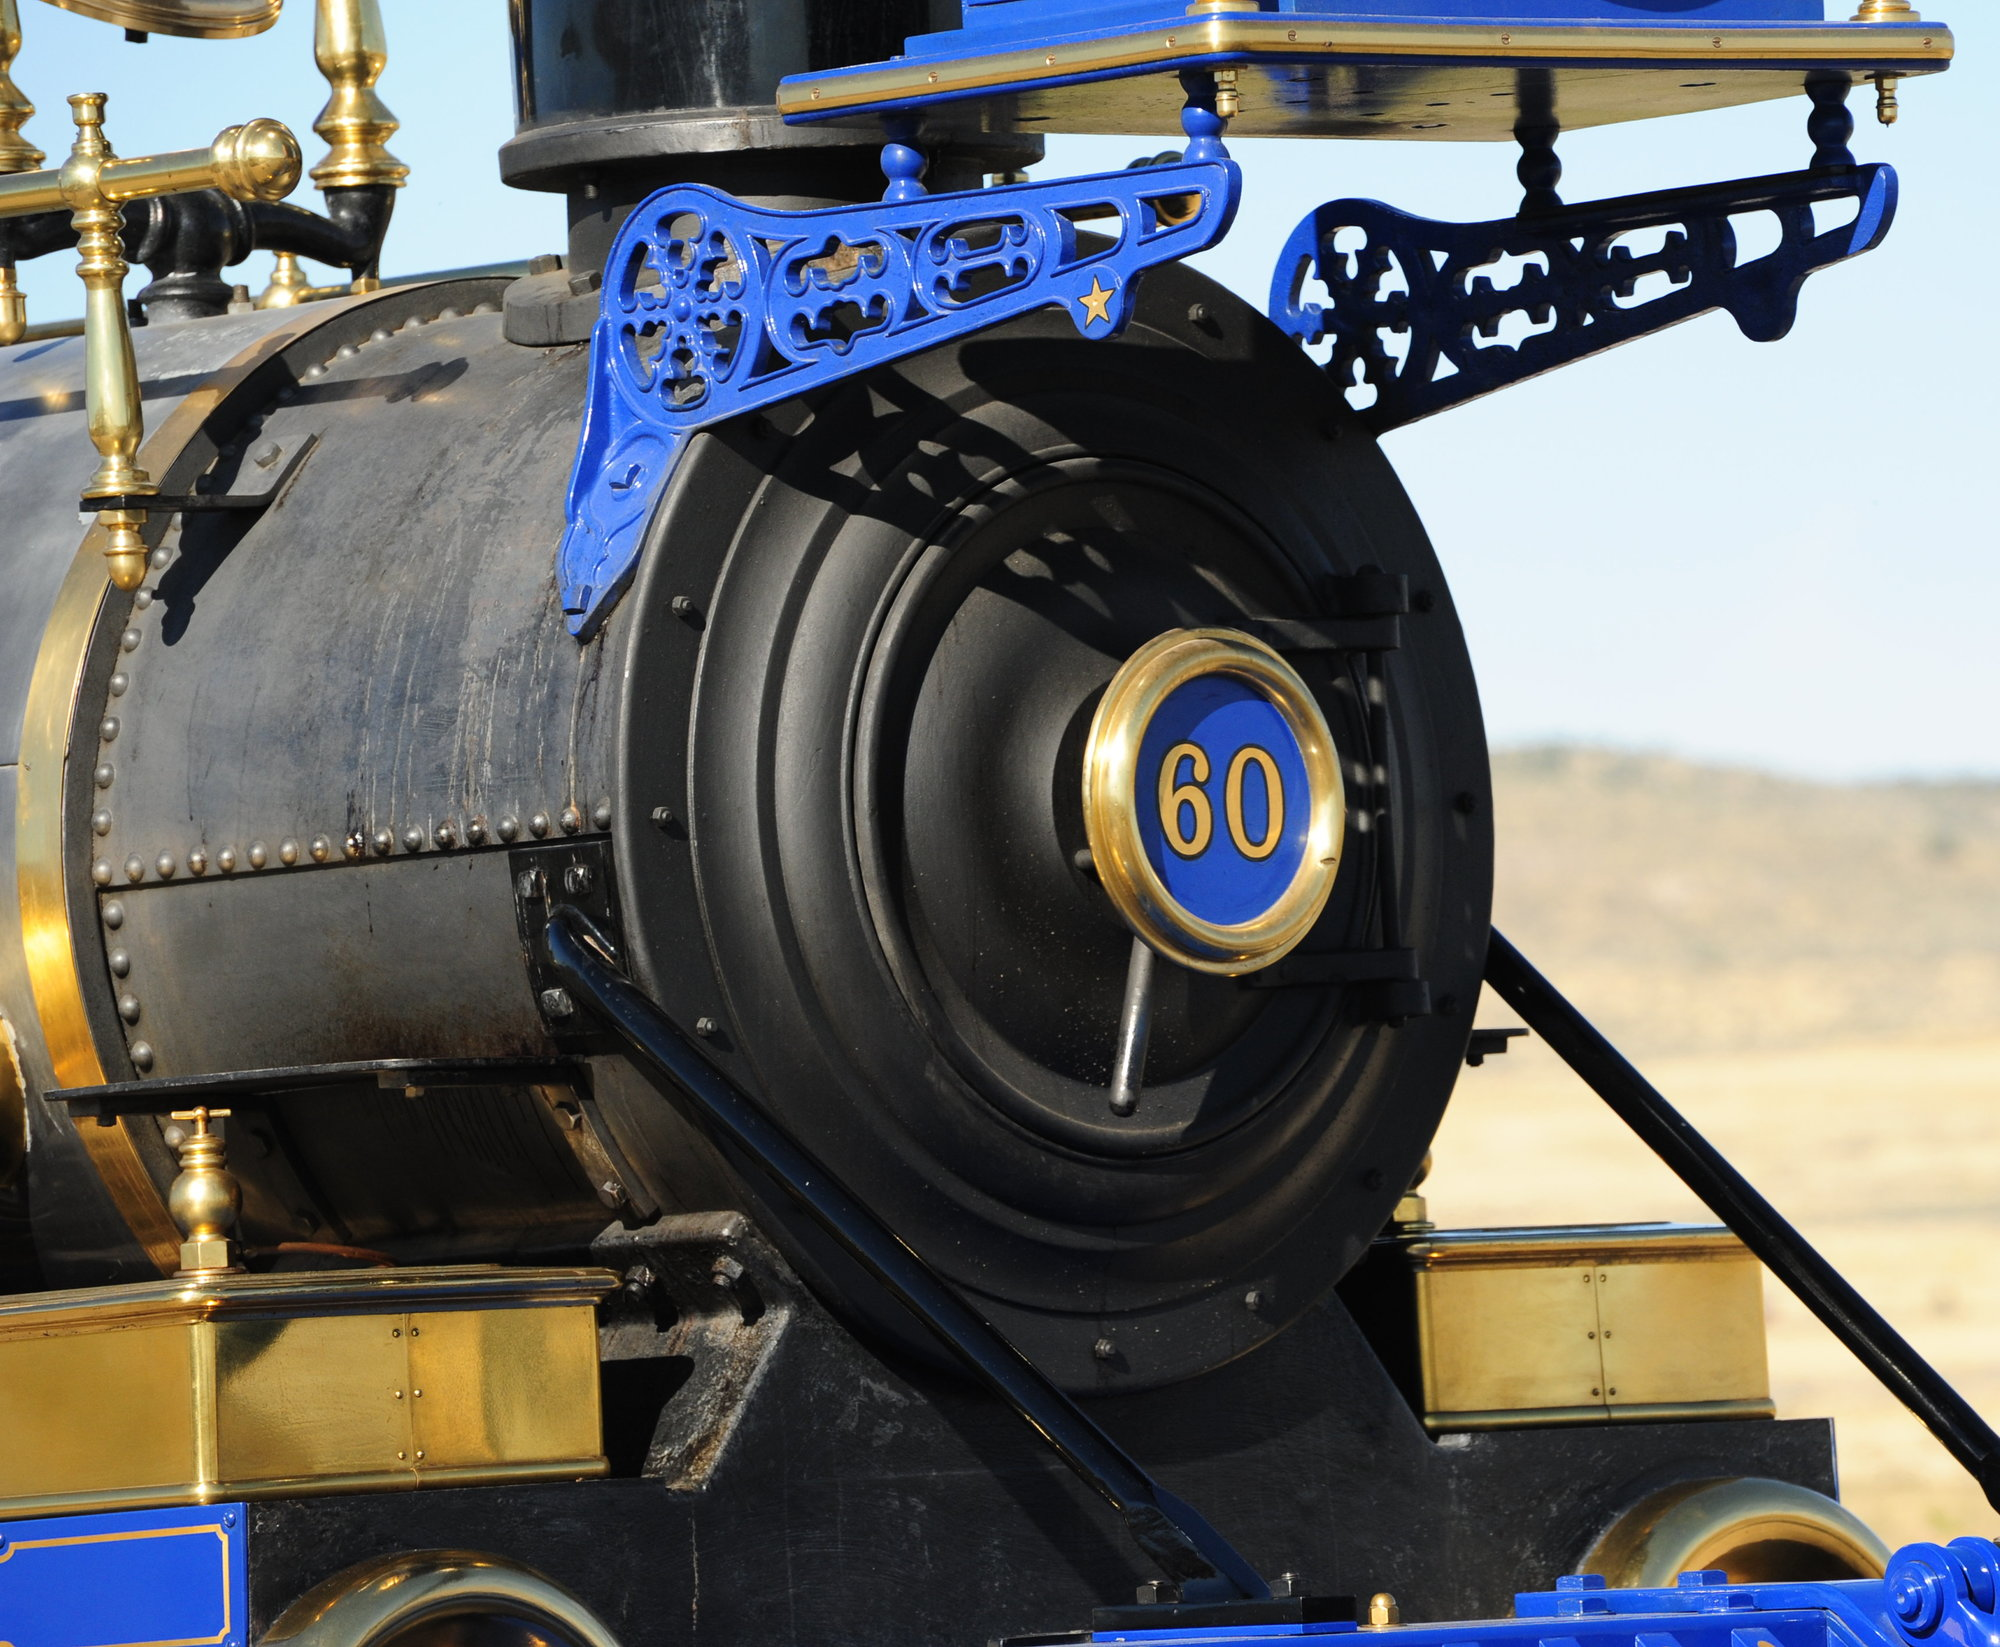 locomotive at Promontory Summit, Utah, site of golden spike